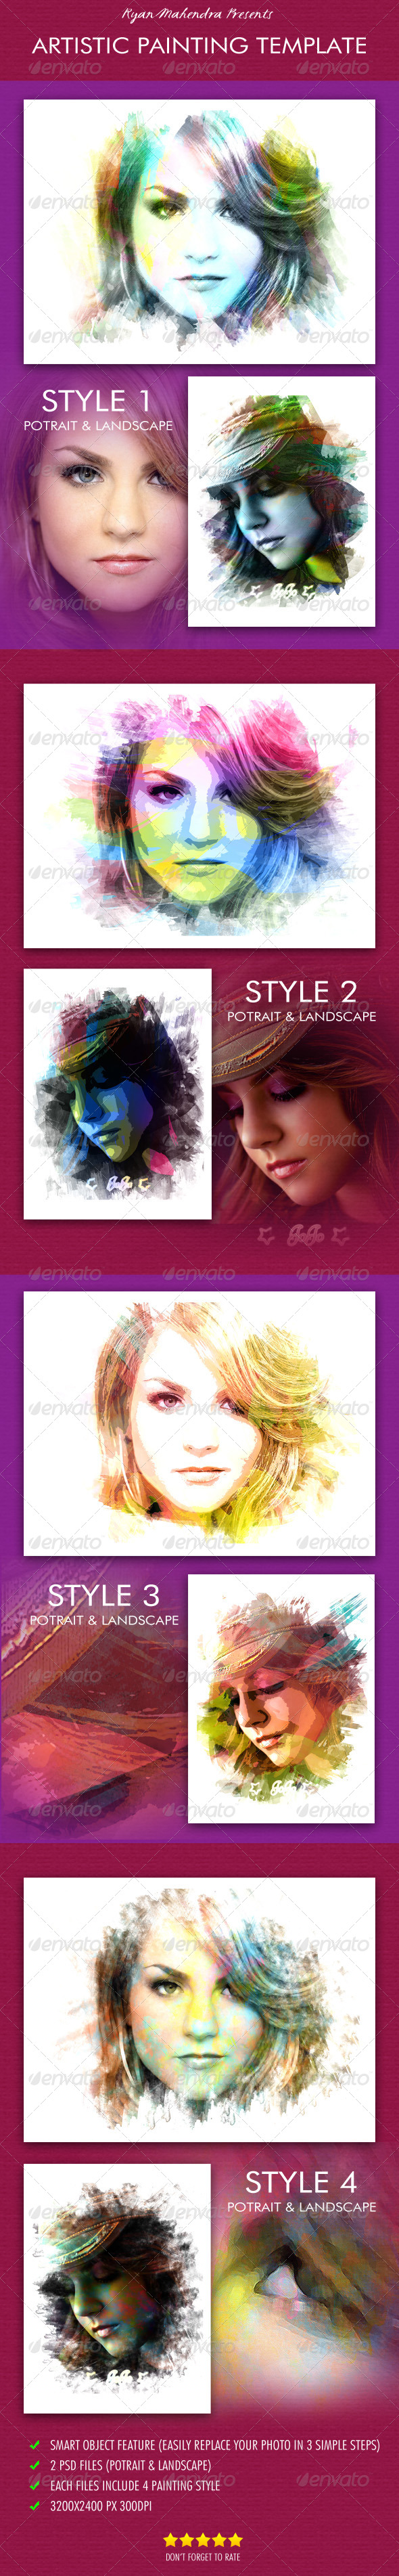 GraphicRiver Artistic Painting Template 5553814